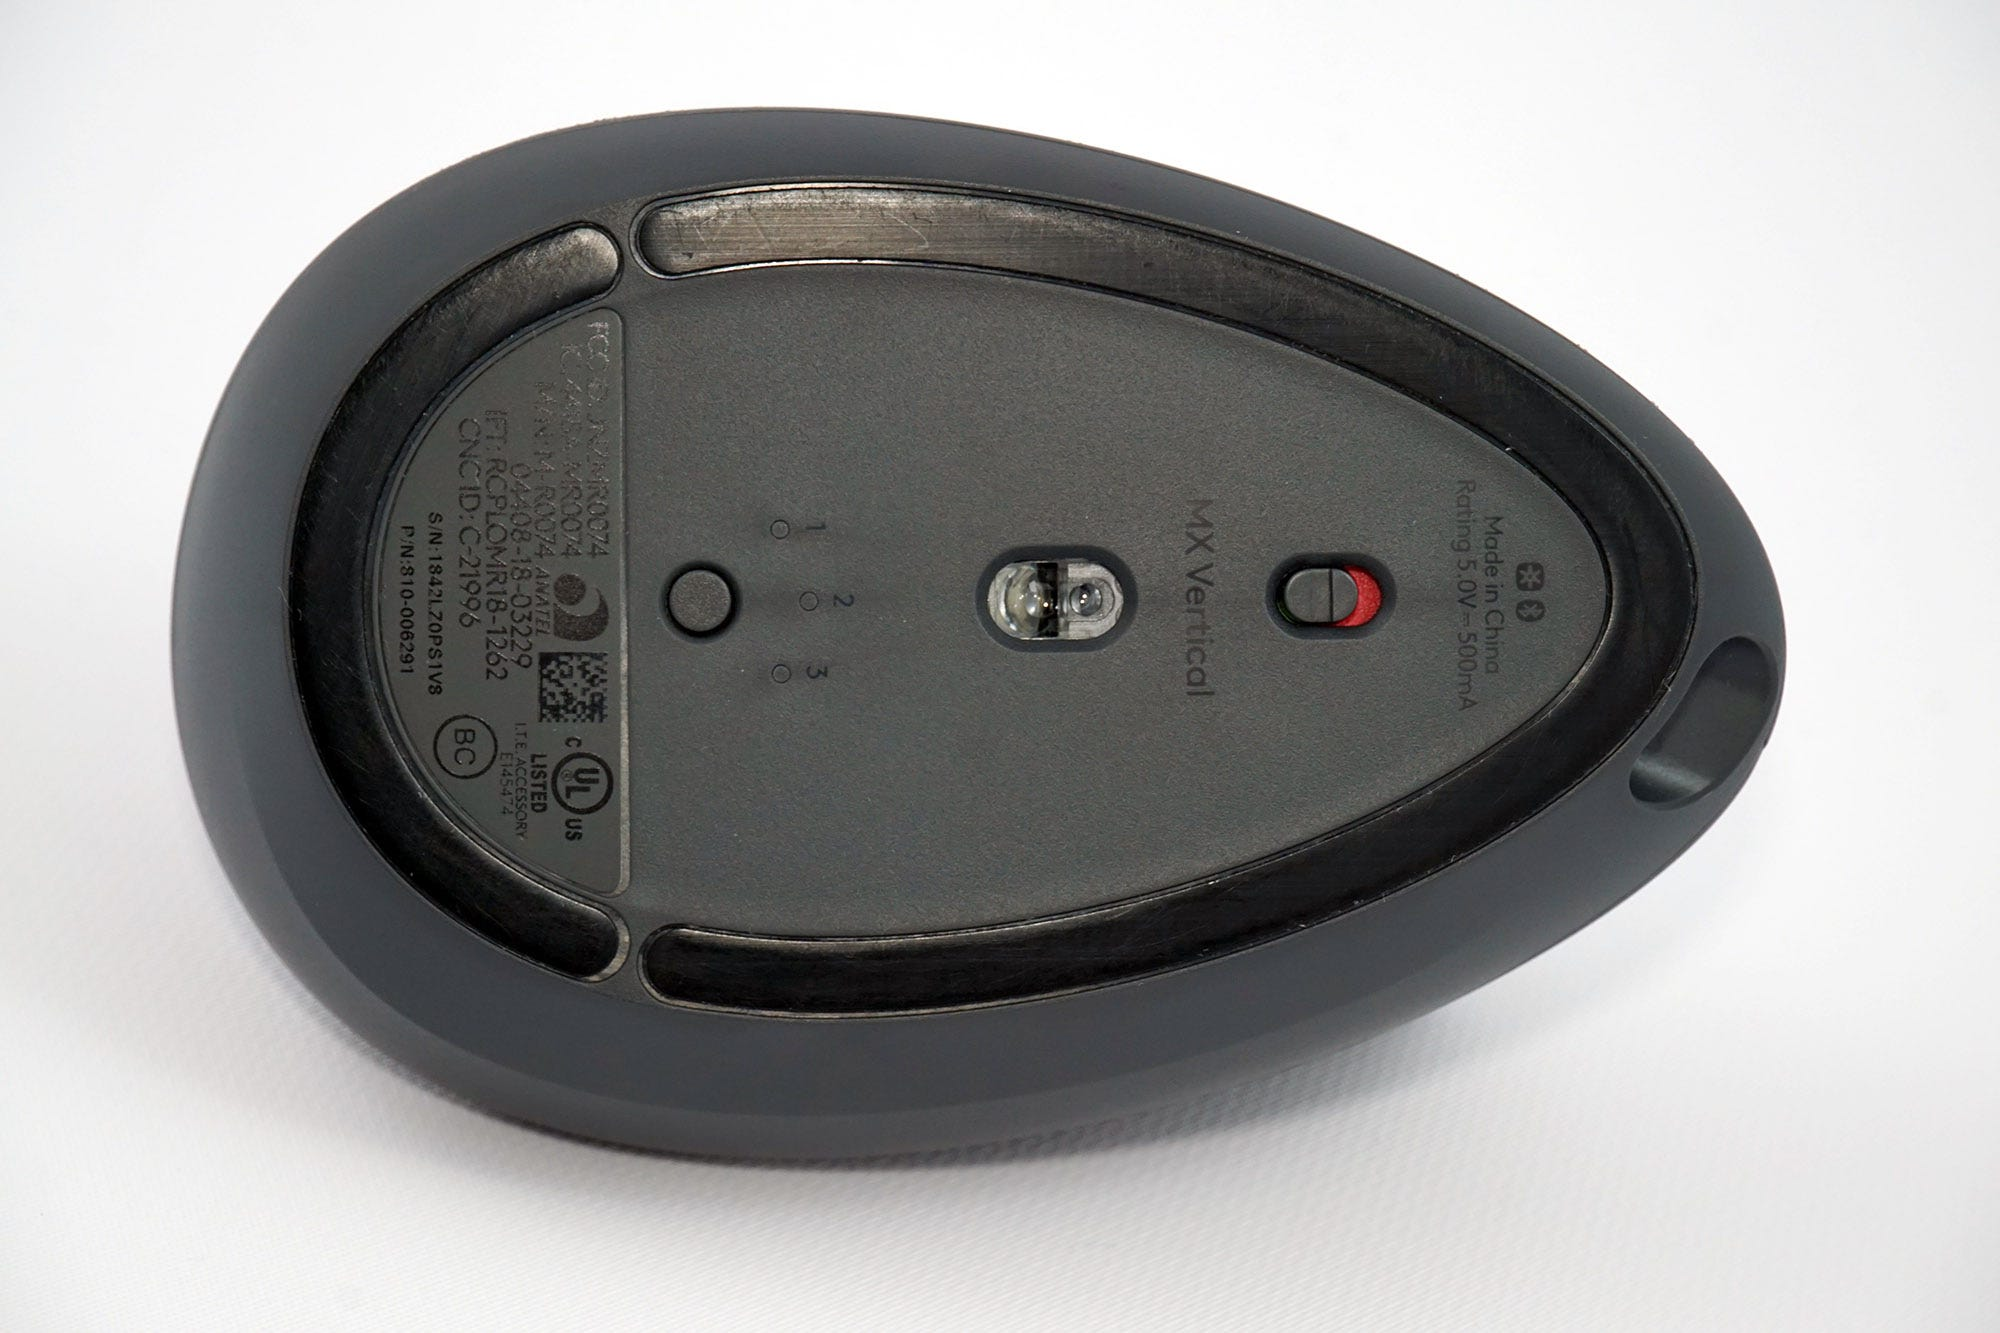 Like most of Logitech's more expensive hardware, the MX Vertical pairs with up to three computers via wireless USB or Bluetooth.